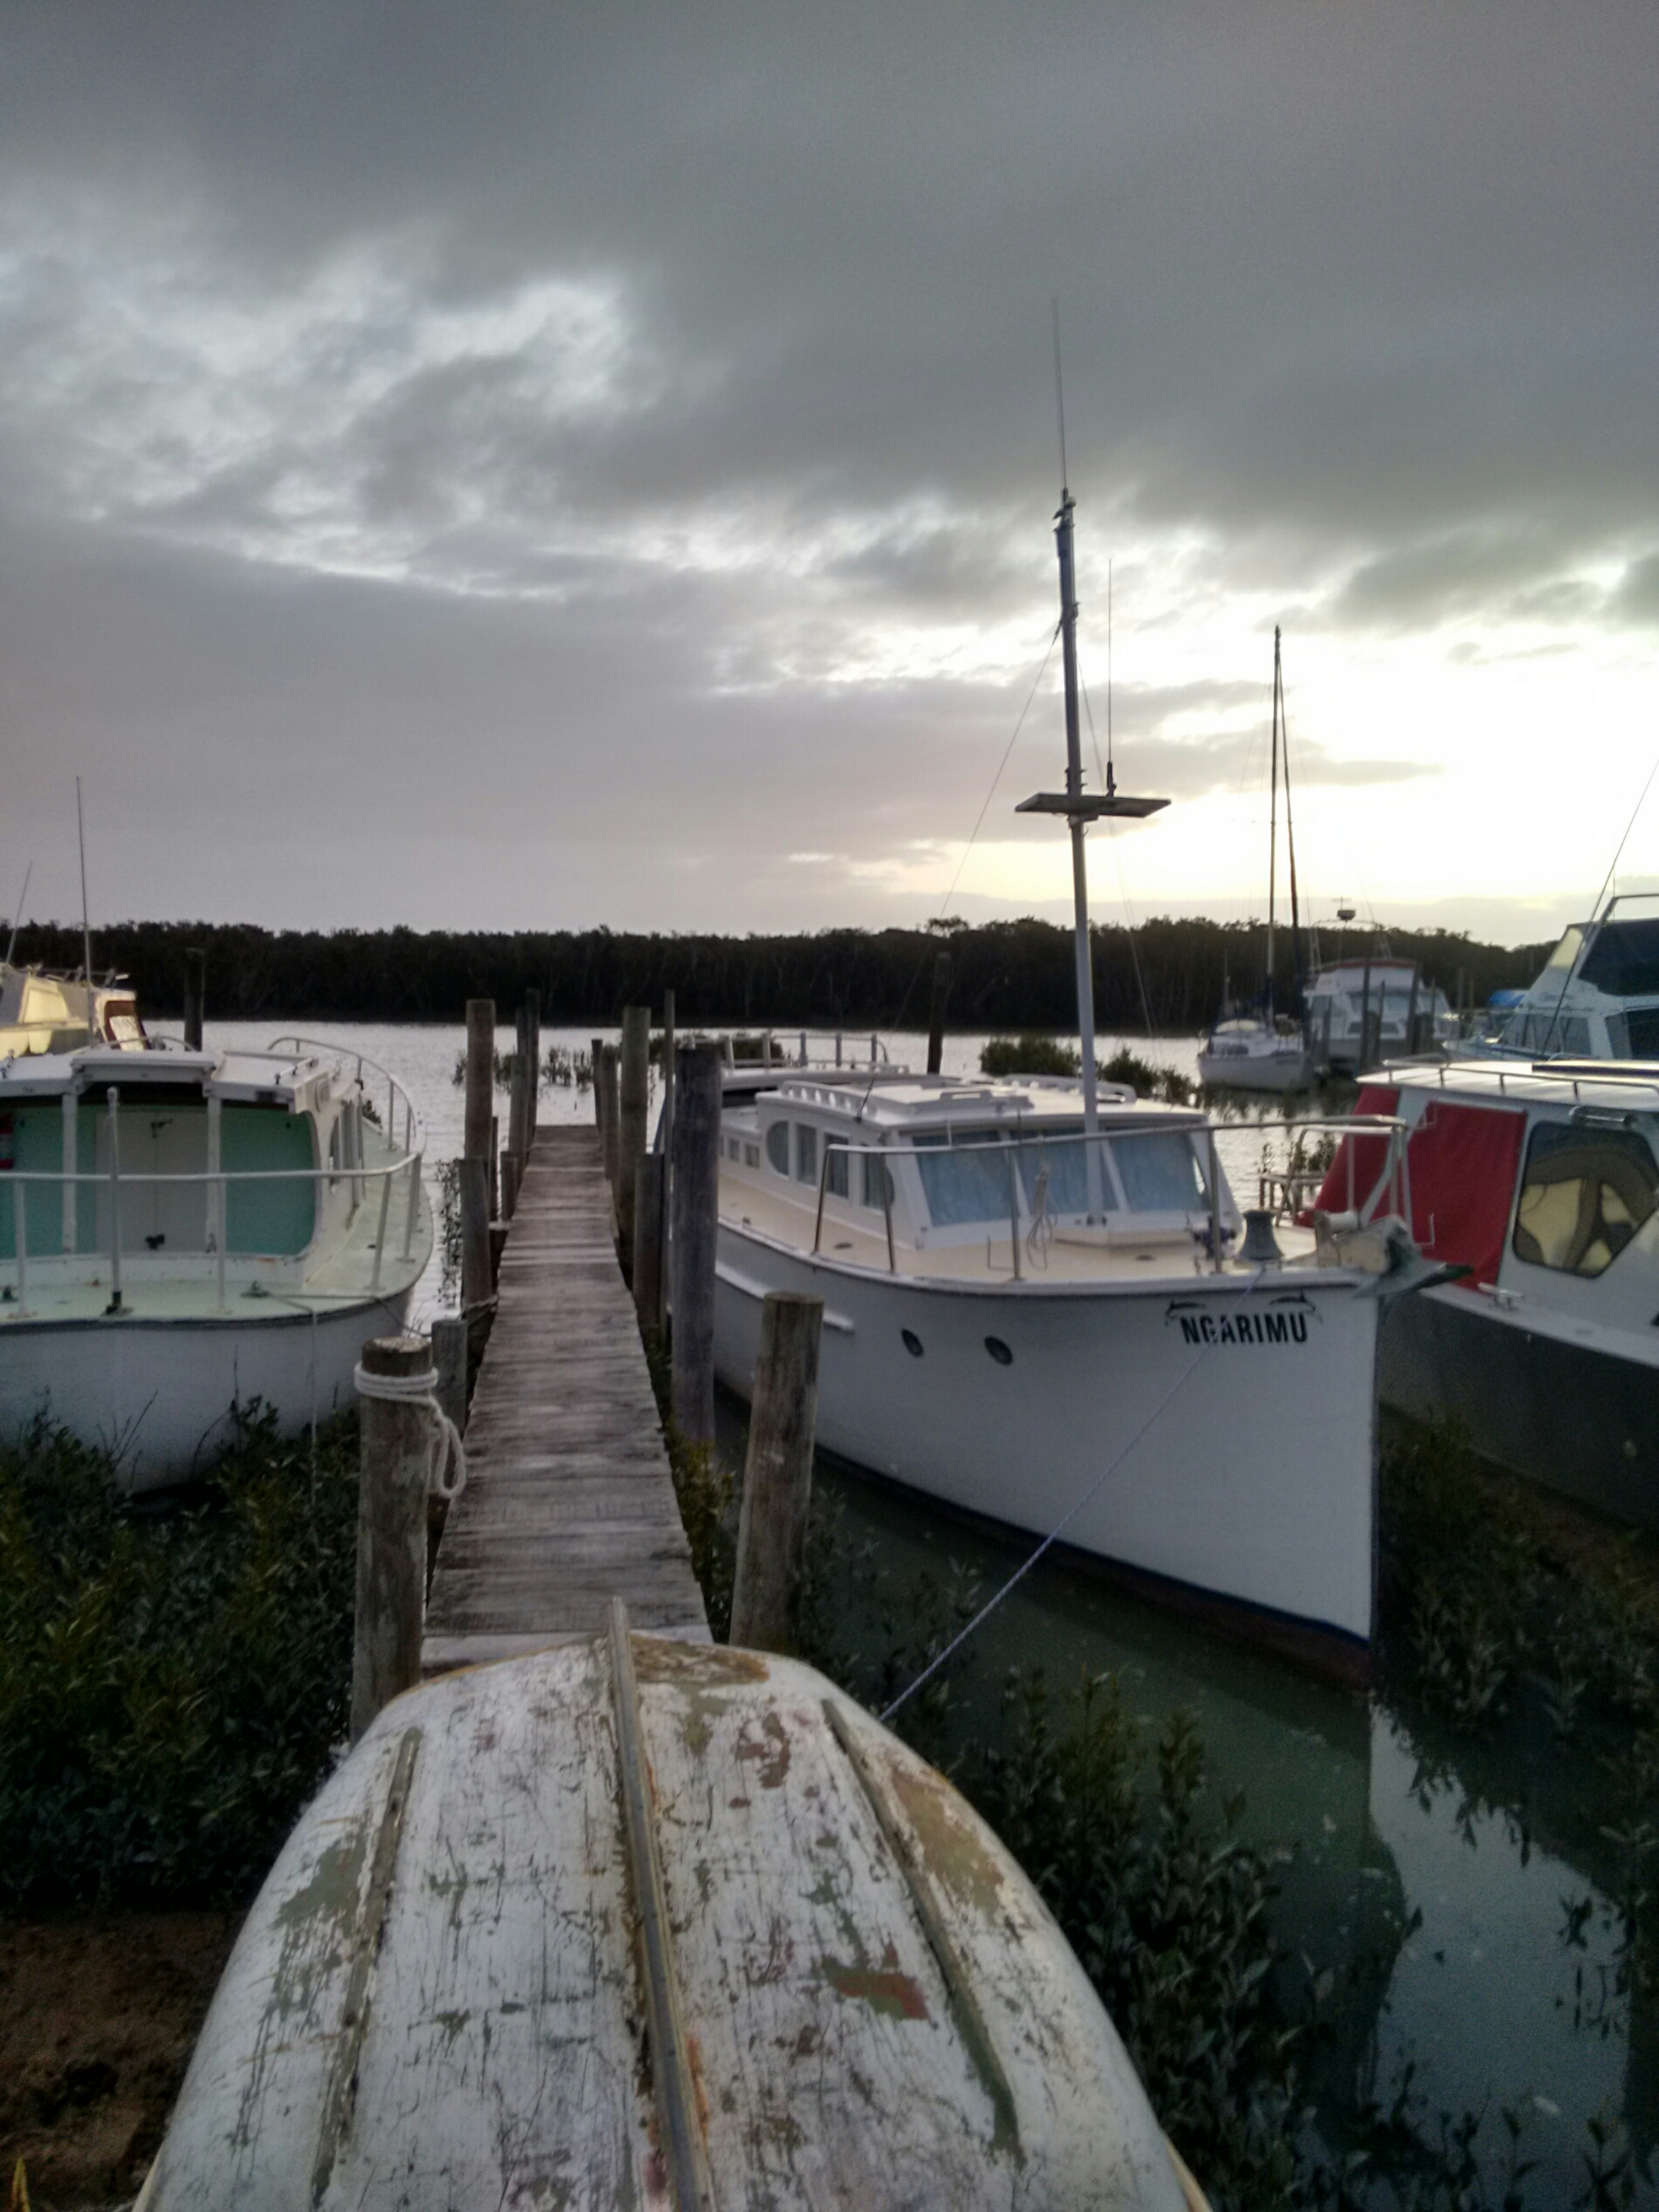 Thames marina at dusk in the southern coromandel